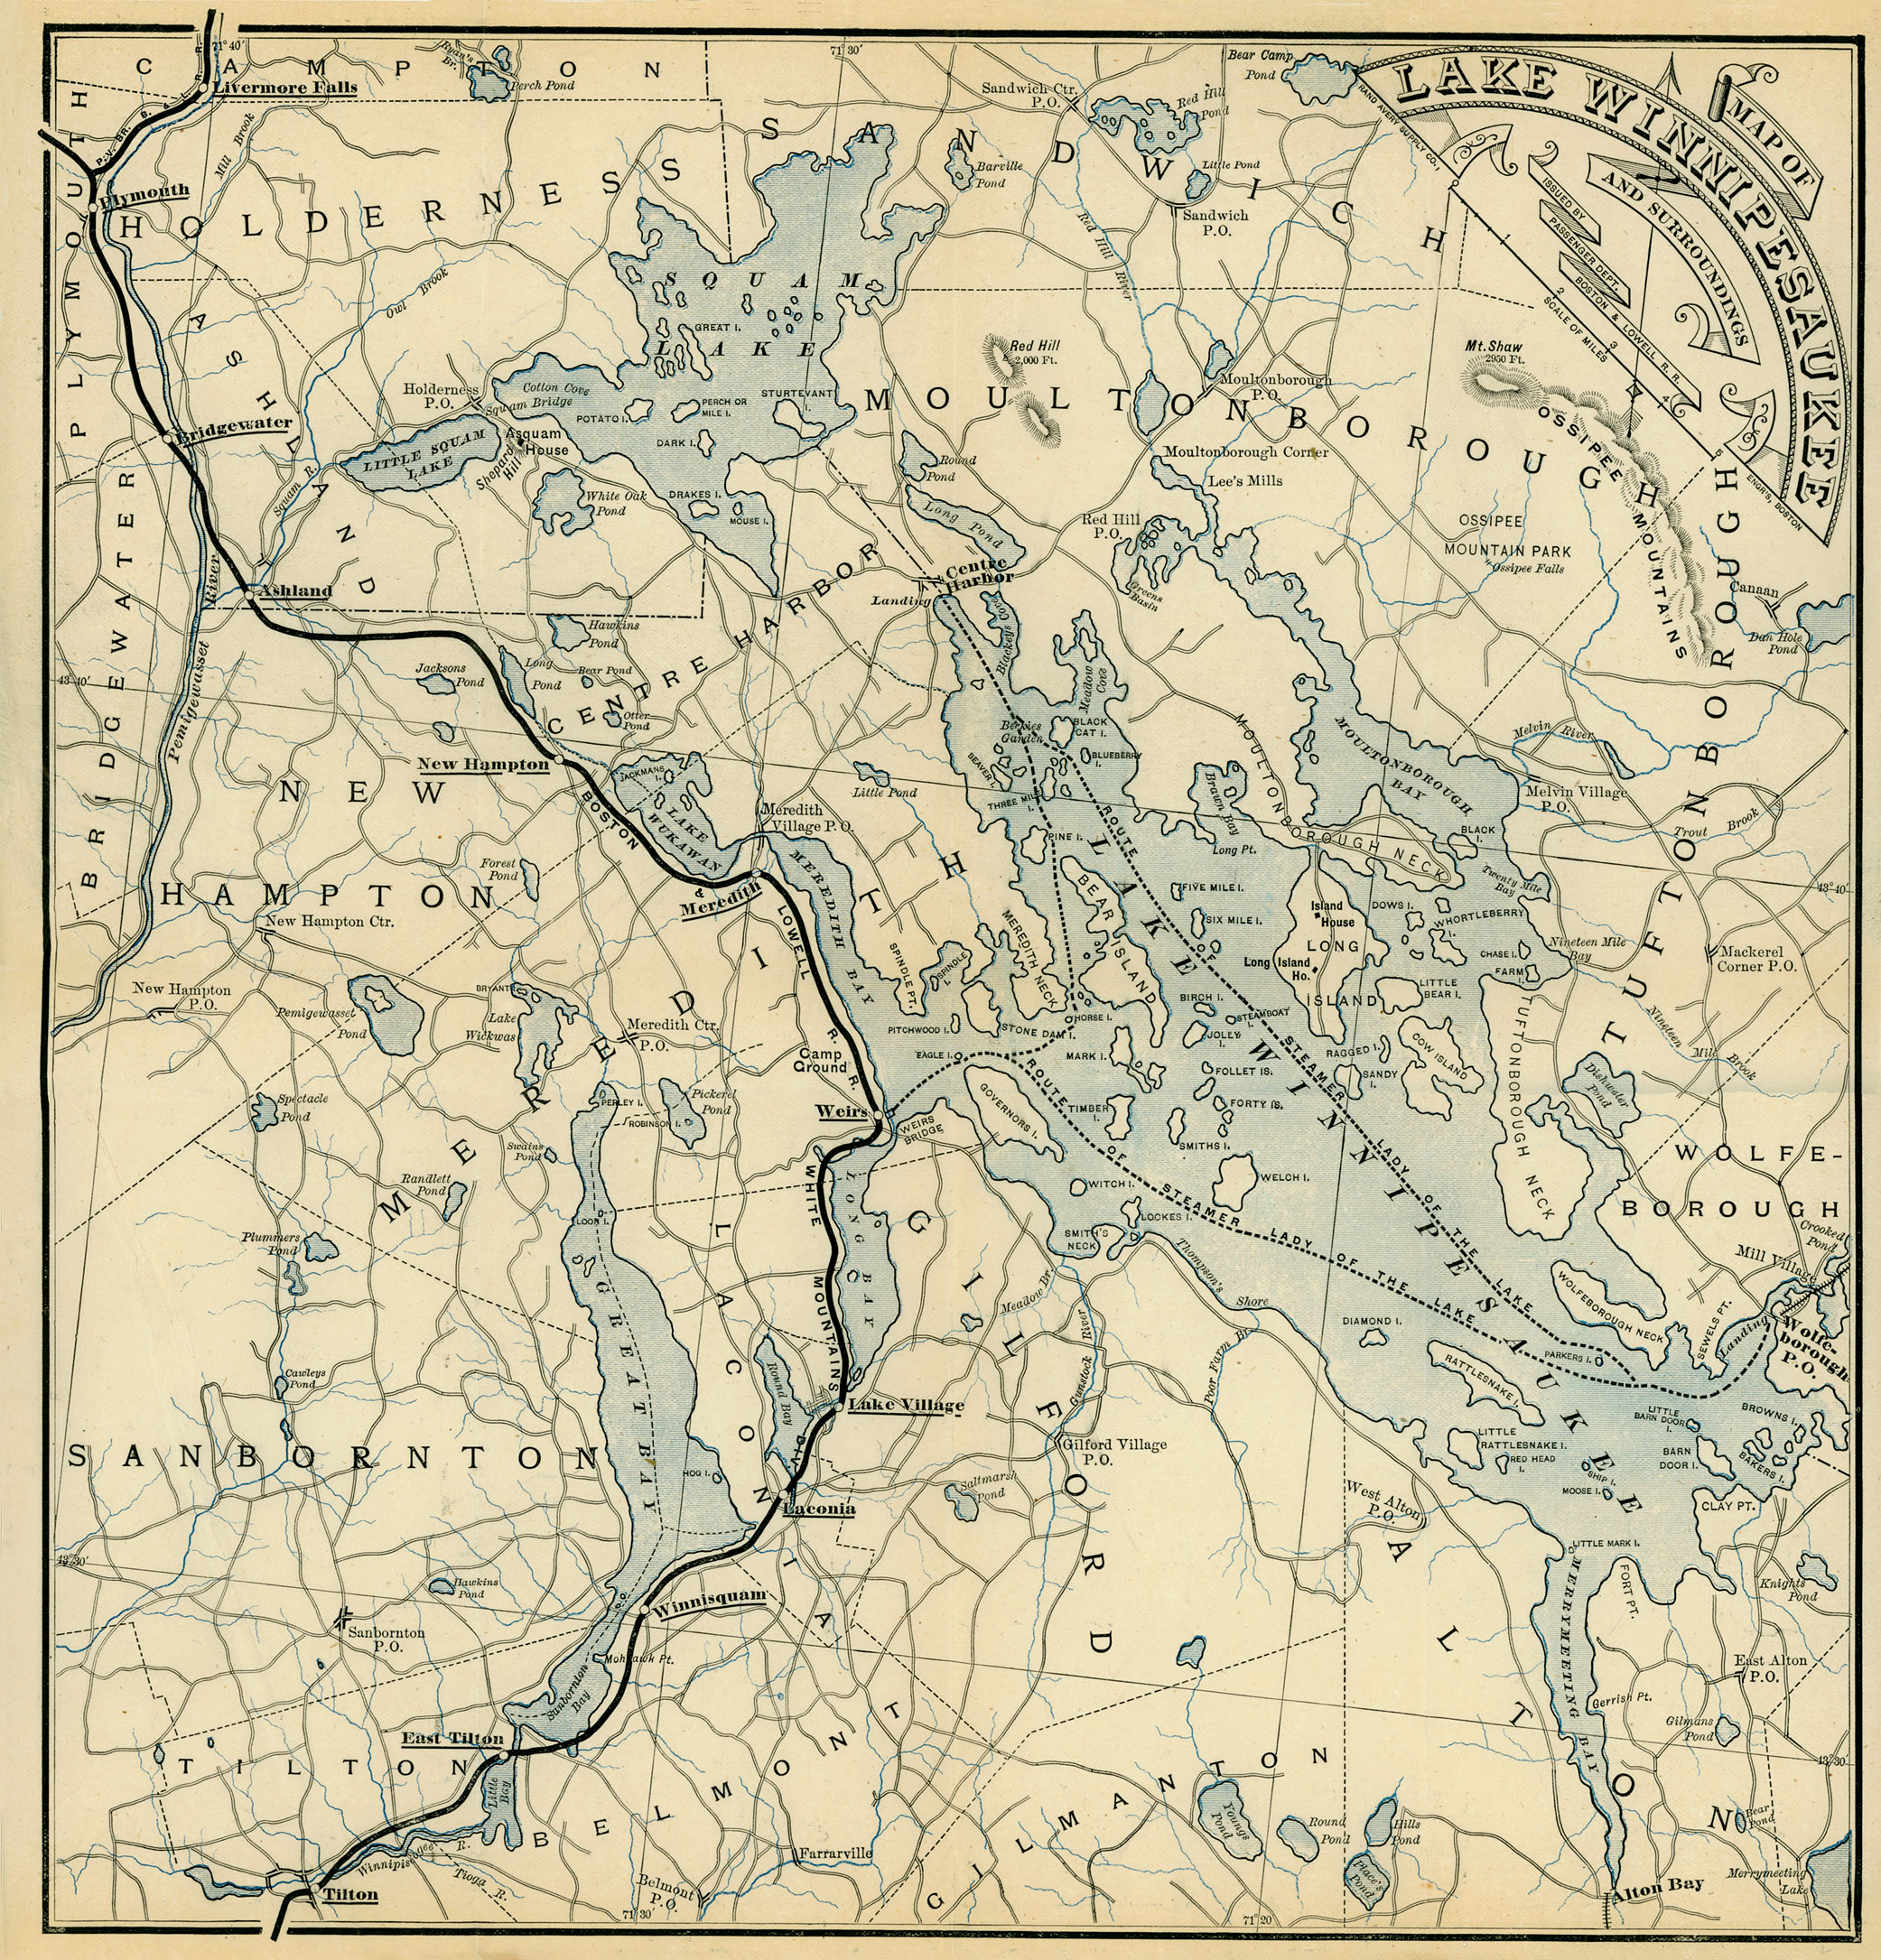 1885 Map of Lake Winnipesaukee WEIRS BEACH WHERE LAKE